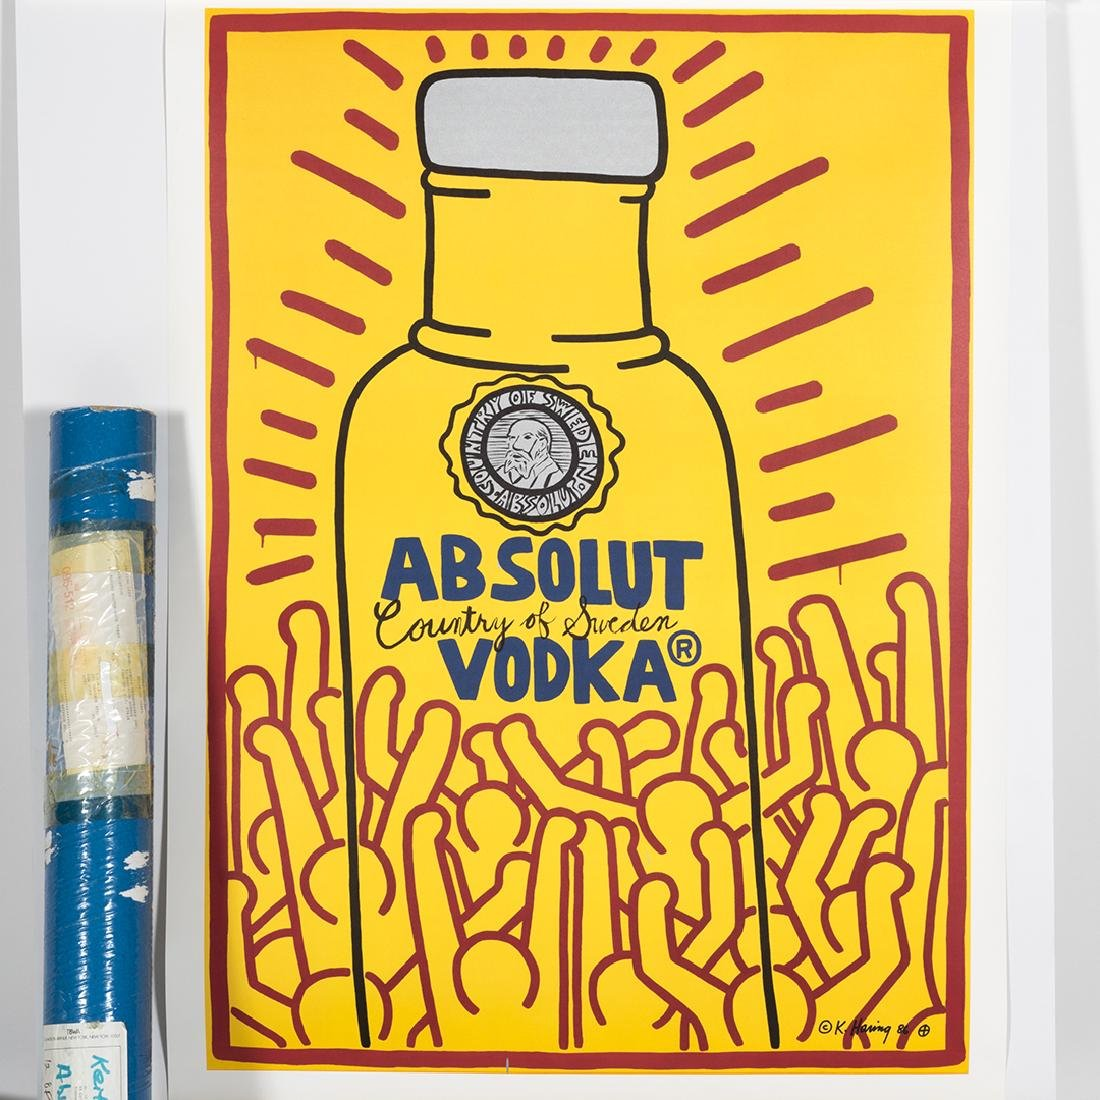 Keith Haring Absolut Vodka Lithograph - 3